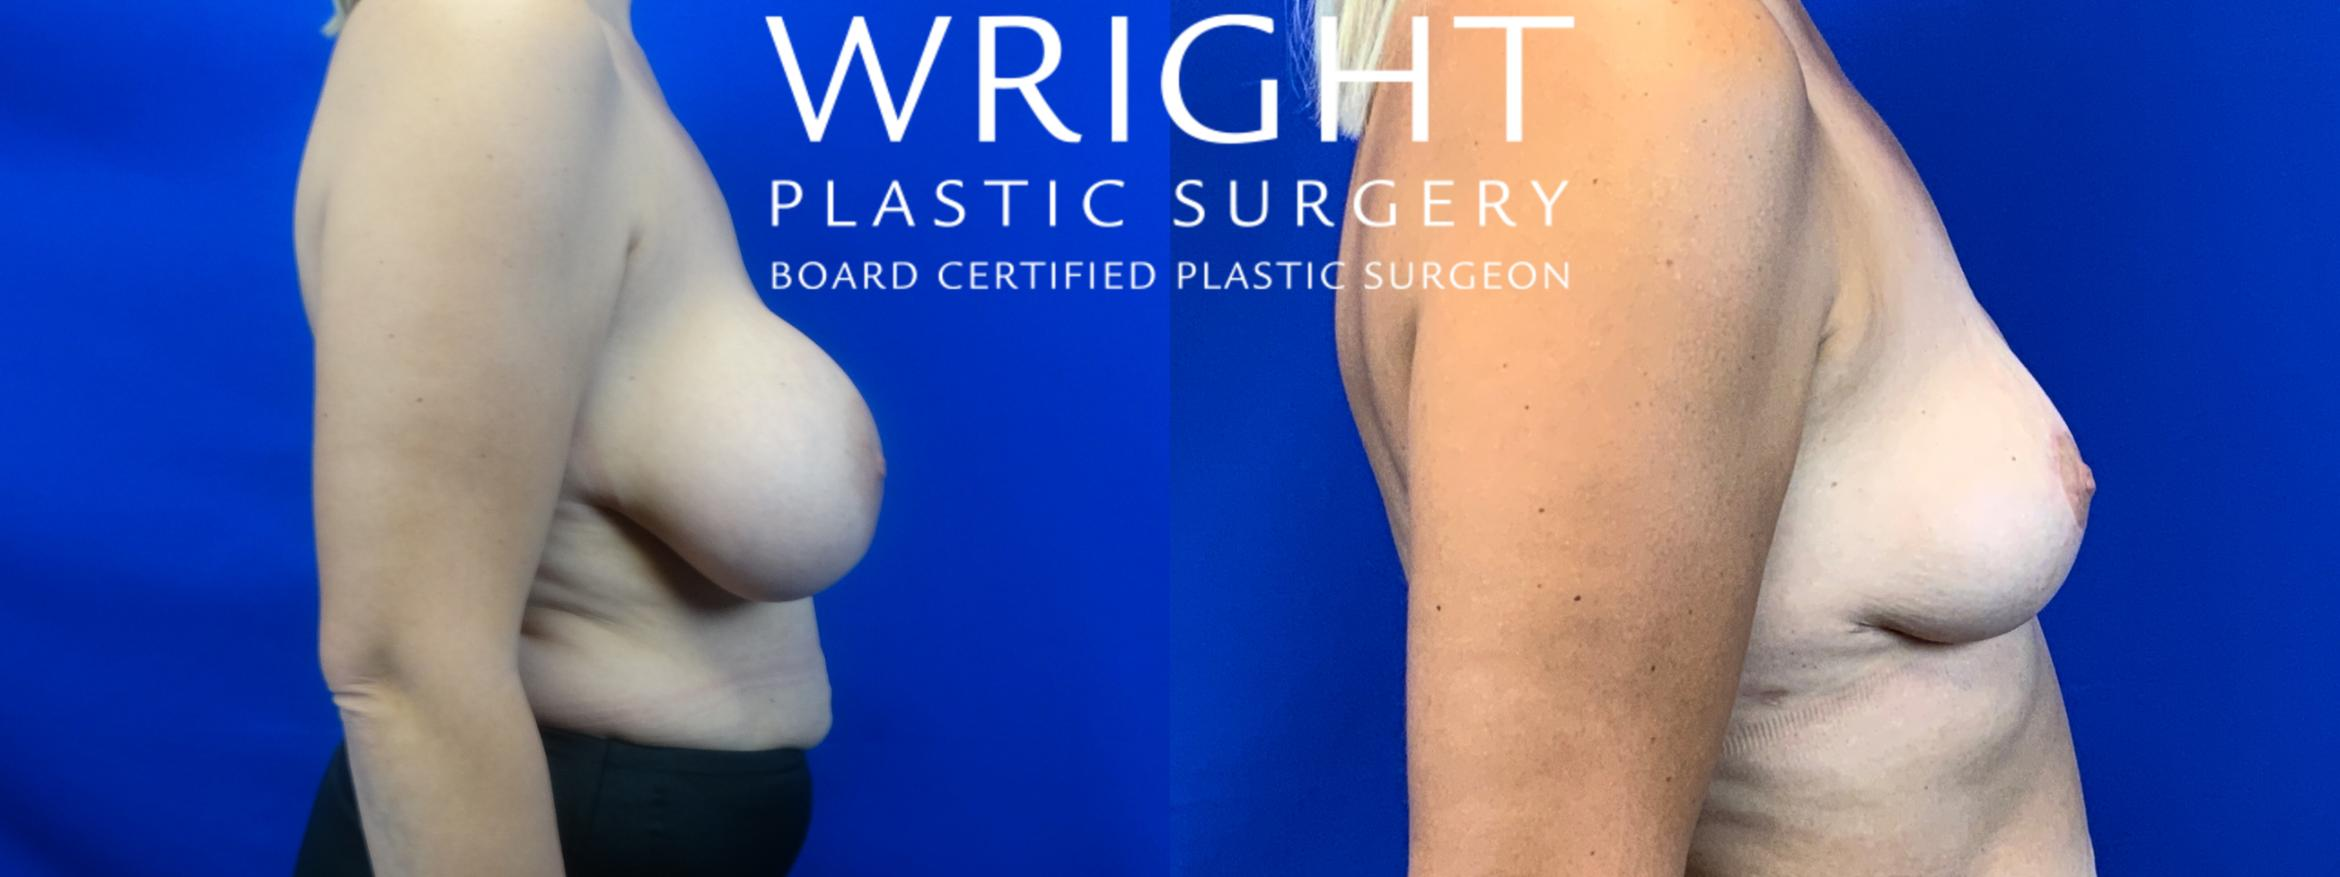 Breast Implant Removal Case 50 Before & After Right Side | Little Rock, Arkansas | Dr. Wright Plastic Surgery